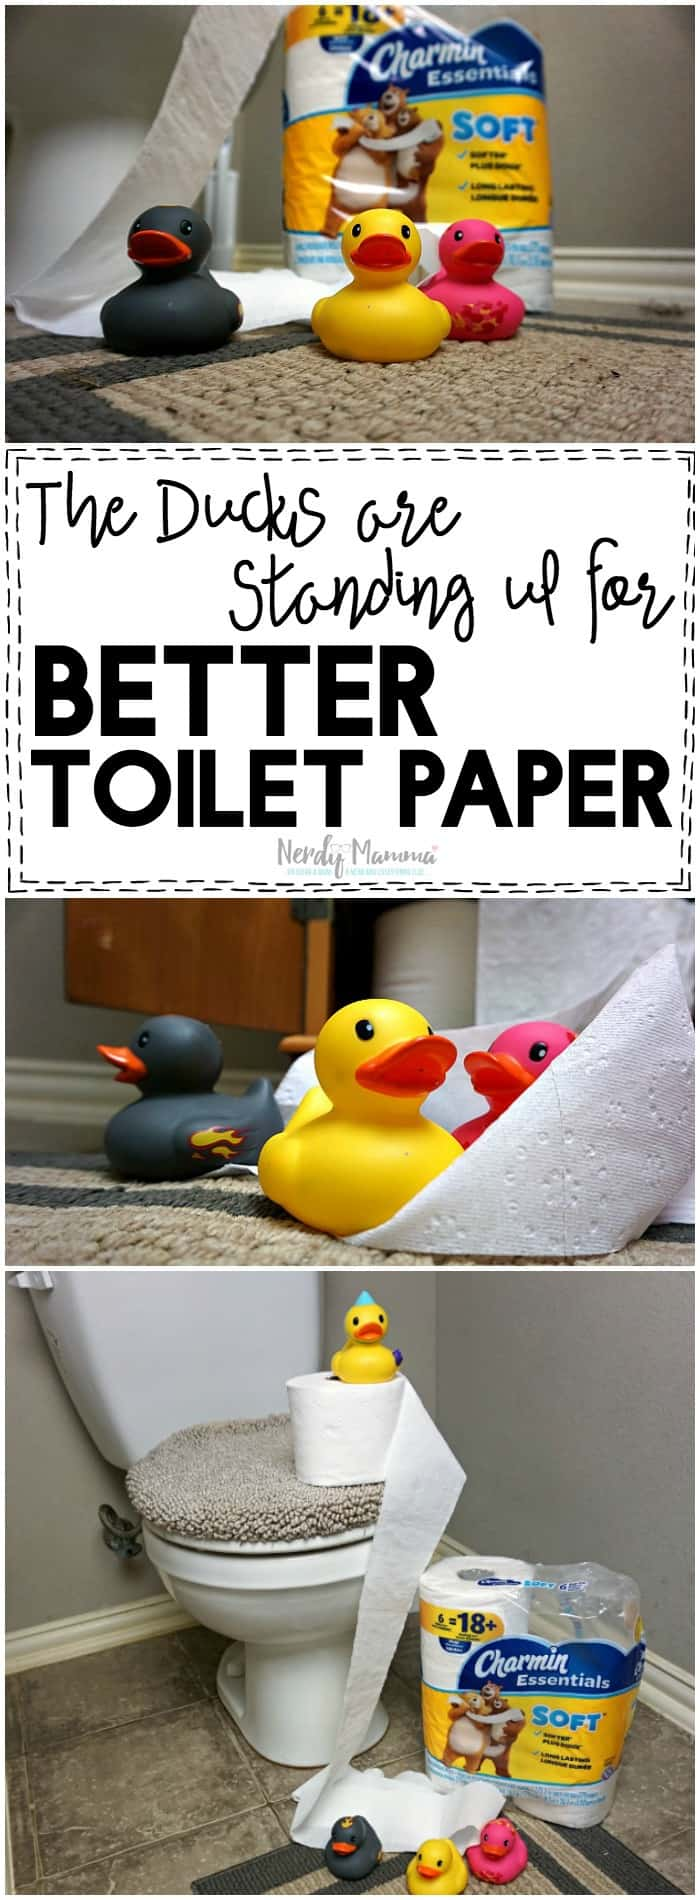 OMG! The ducks are rising up for better toilet paper! Worse than the Zombie Apocalypse! Except with toilet paper. Heh.